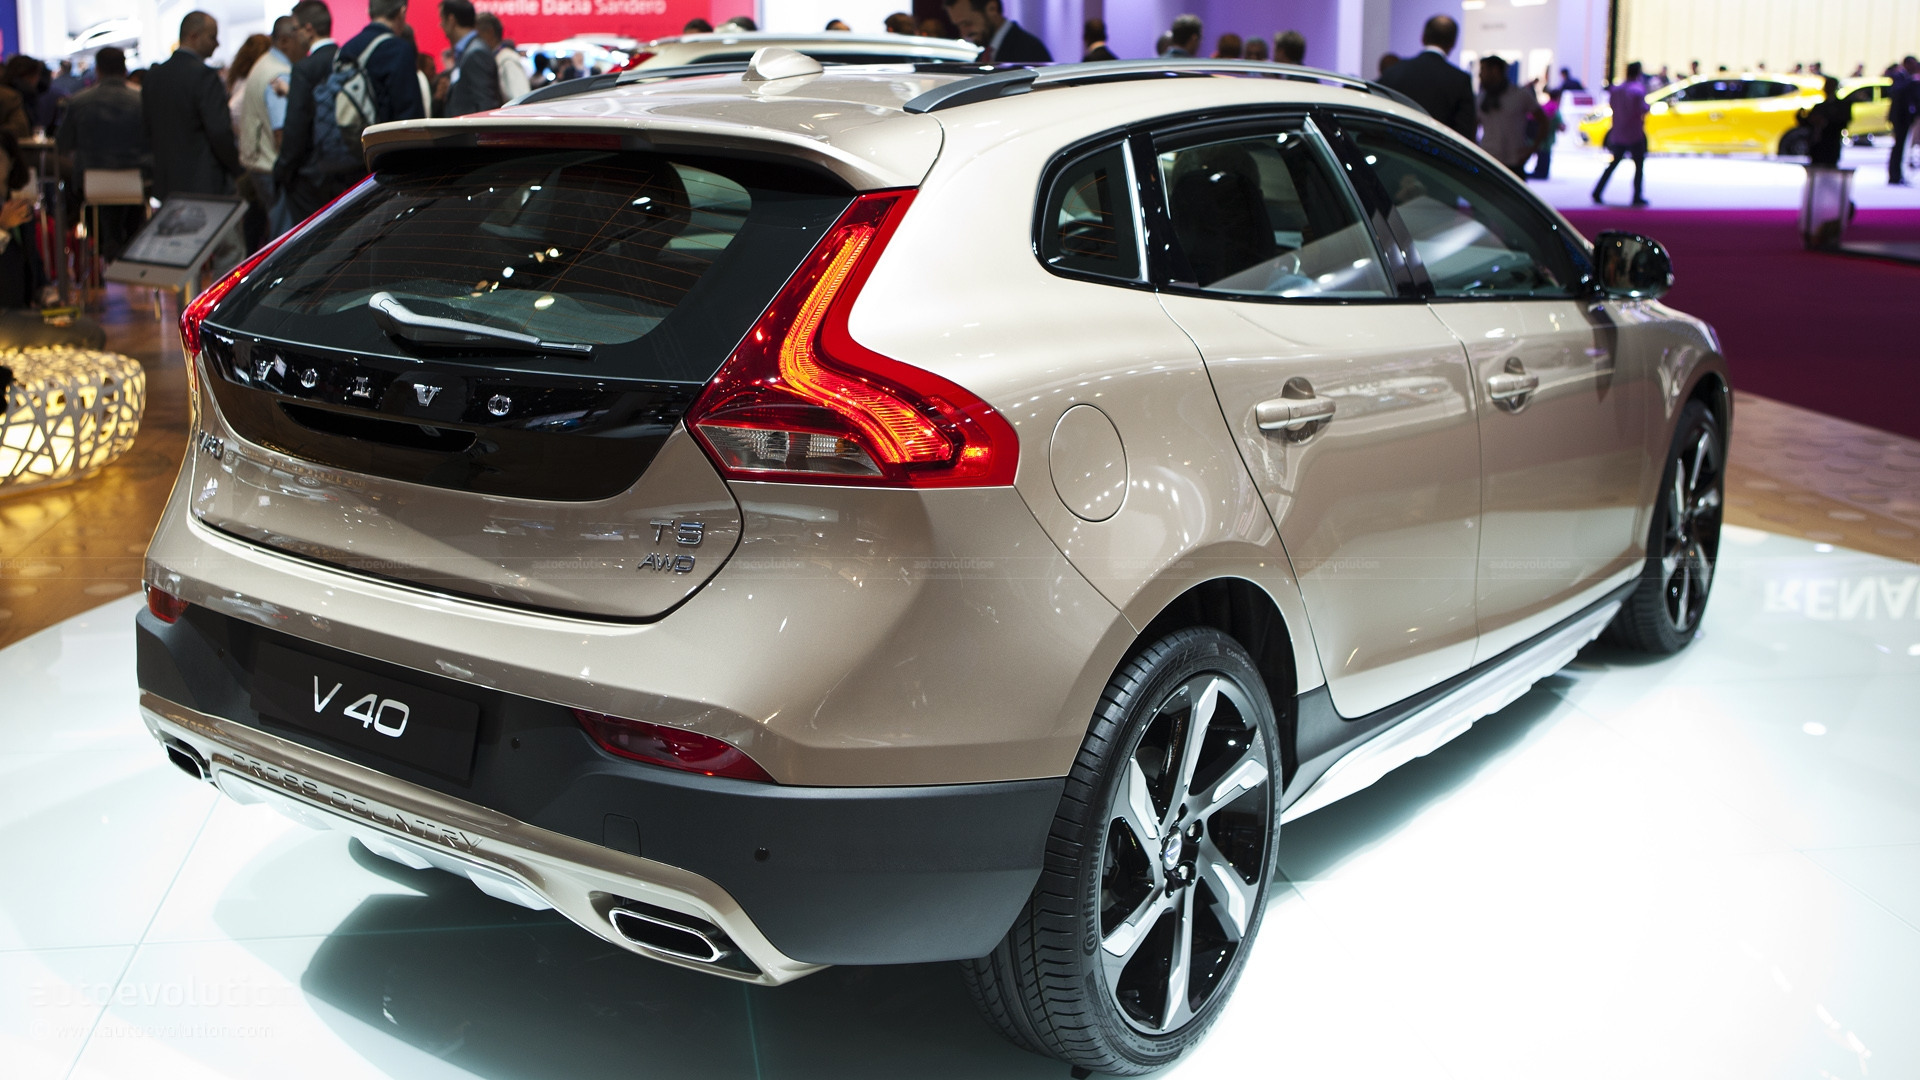 Volvo V40 Cross Country 2.0 T3 (152 Hp